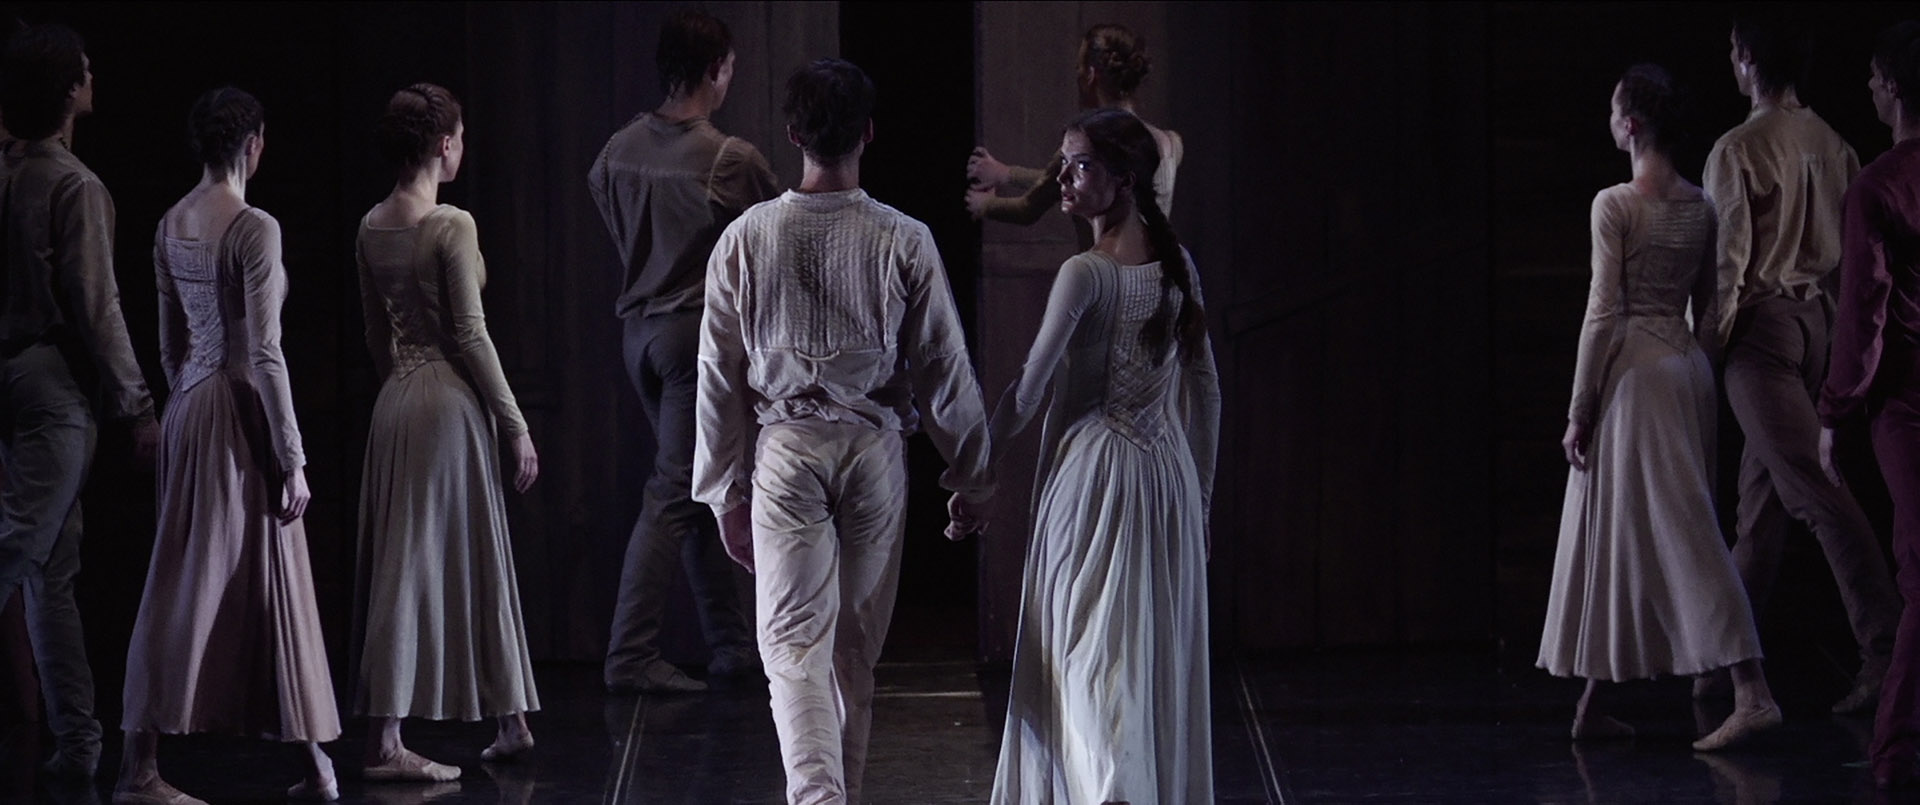 Les Noces — Conduction — A film featuring Teodor Currentzis